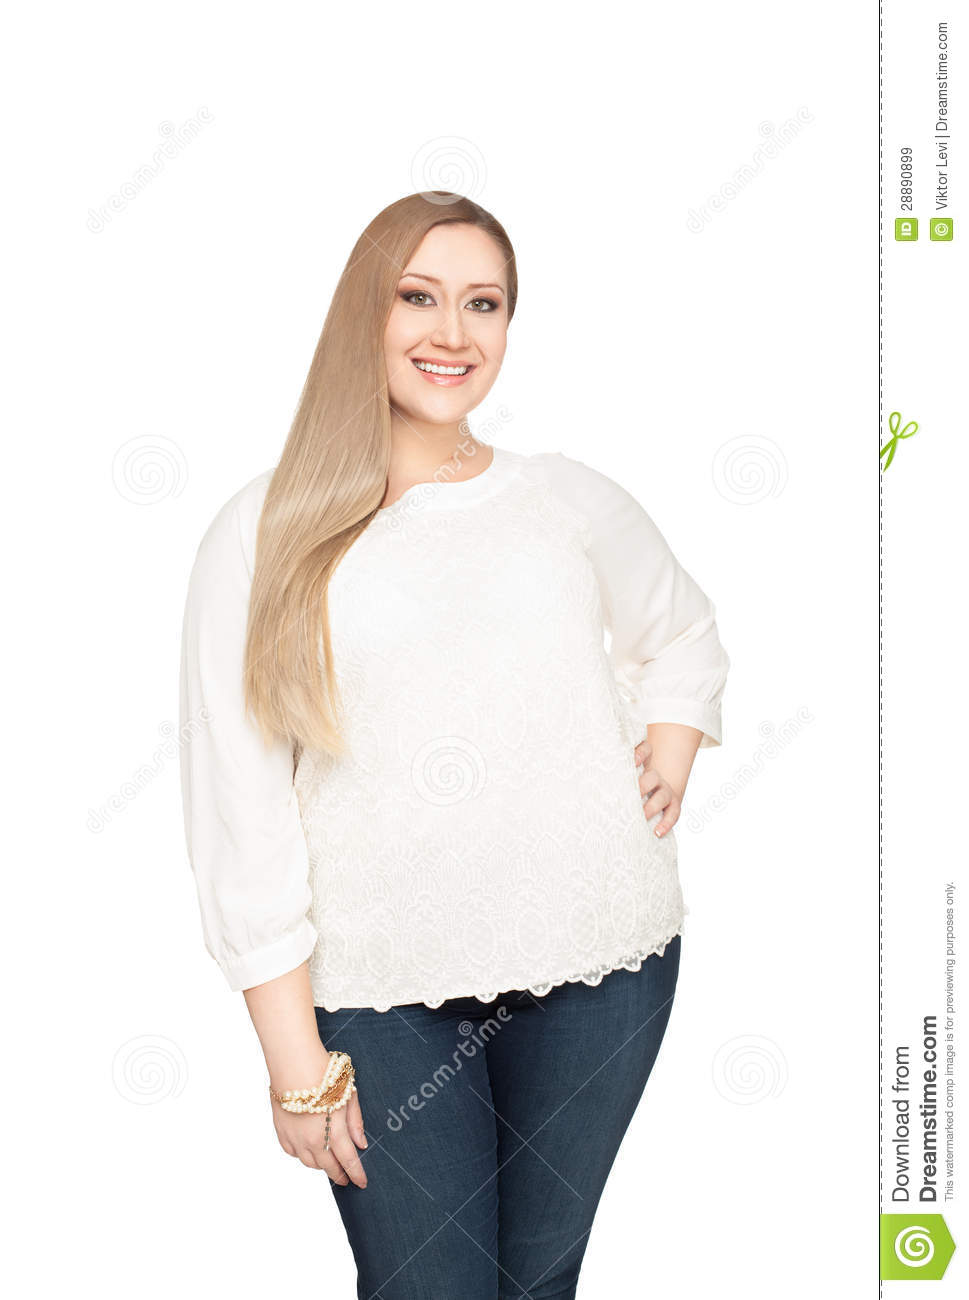 overweight woman online dating 100% free online dating website here is where singles from all races and interests can find real singles to flirt, date, fall in love, and create relationships.